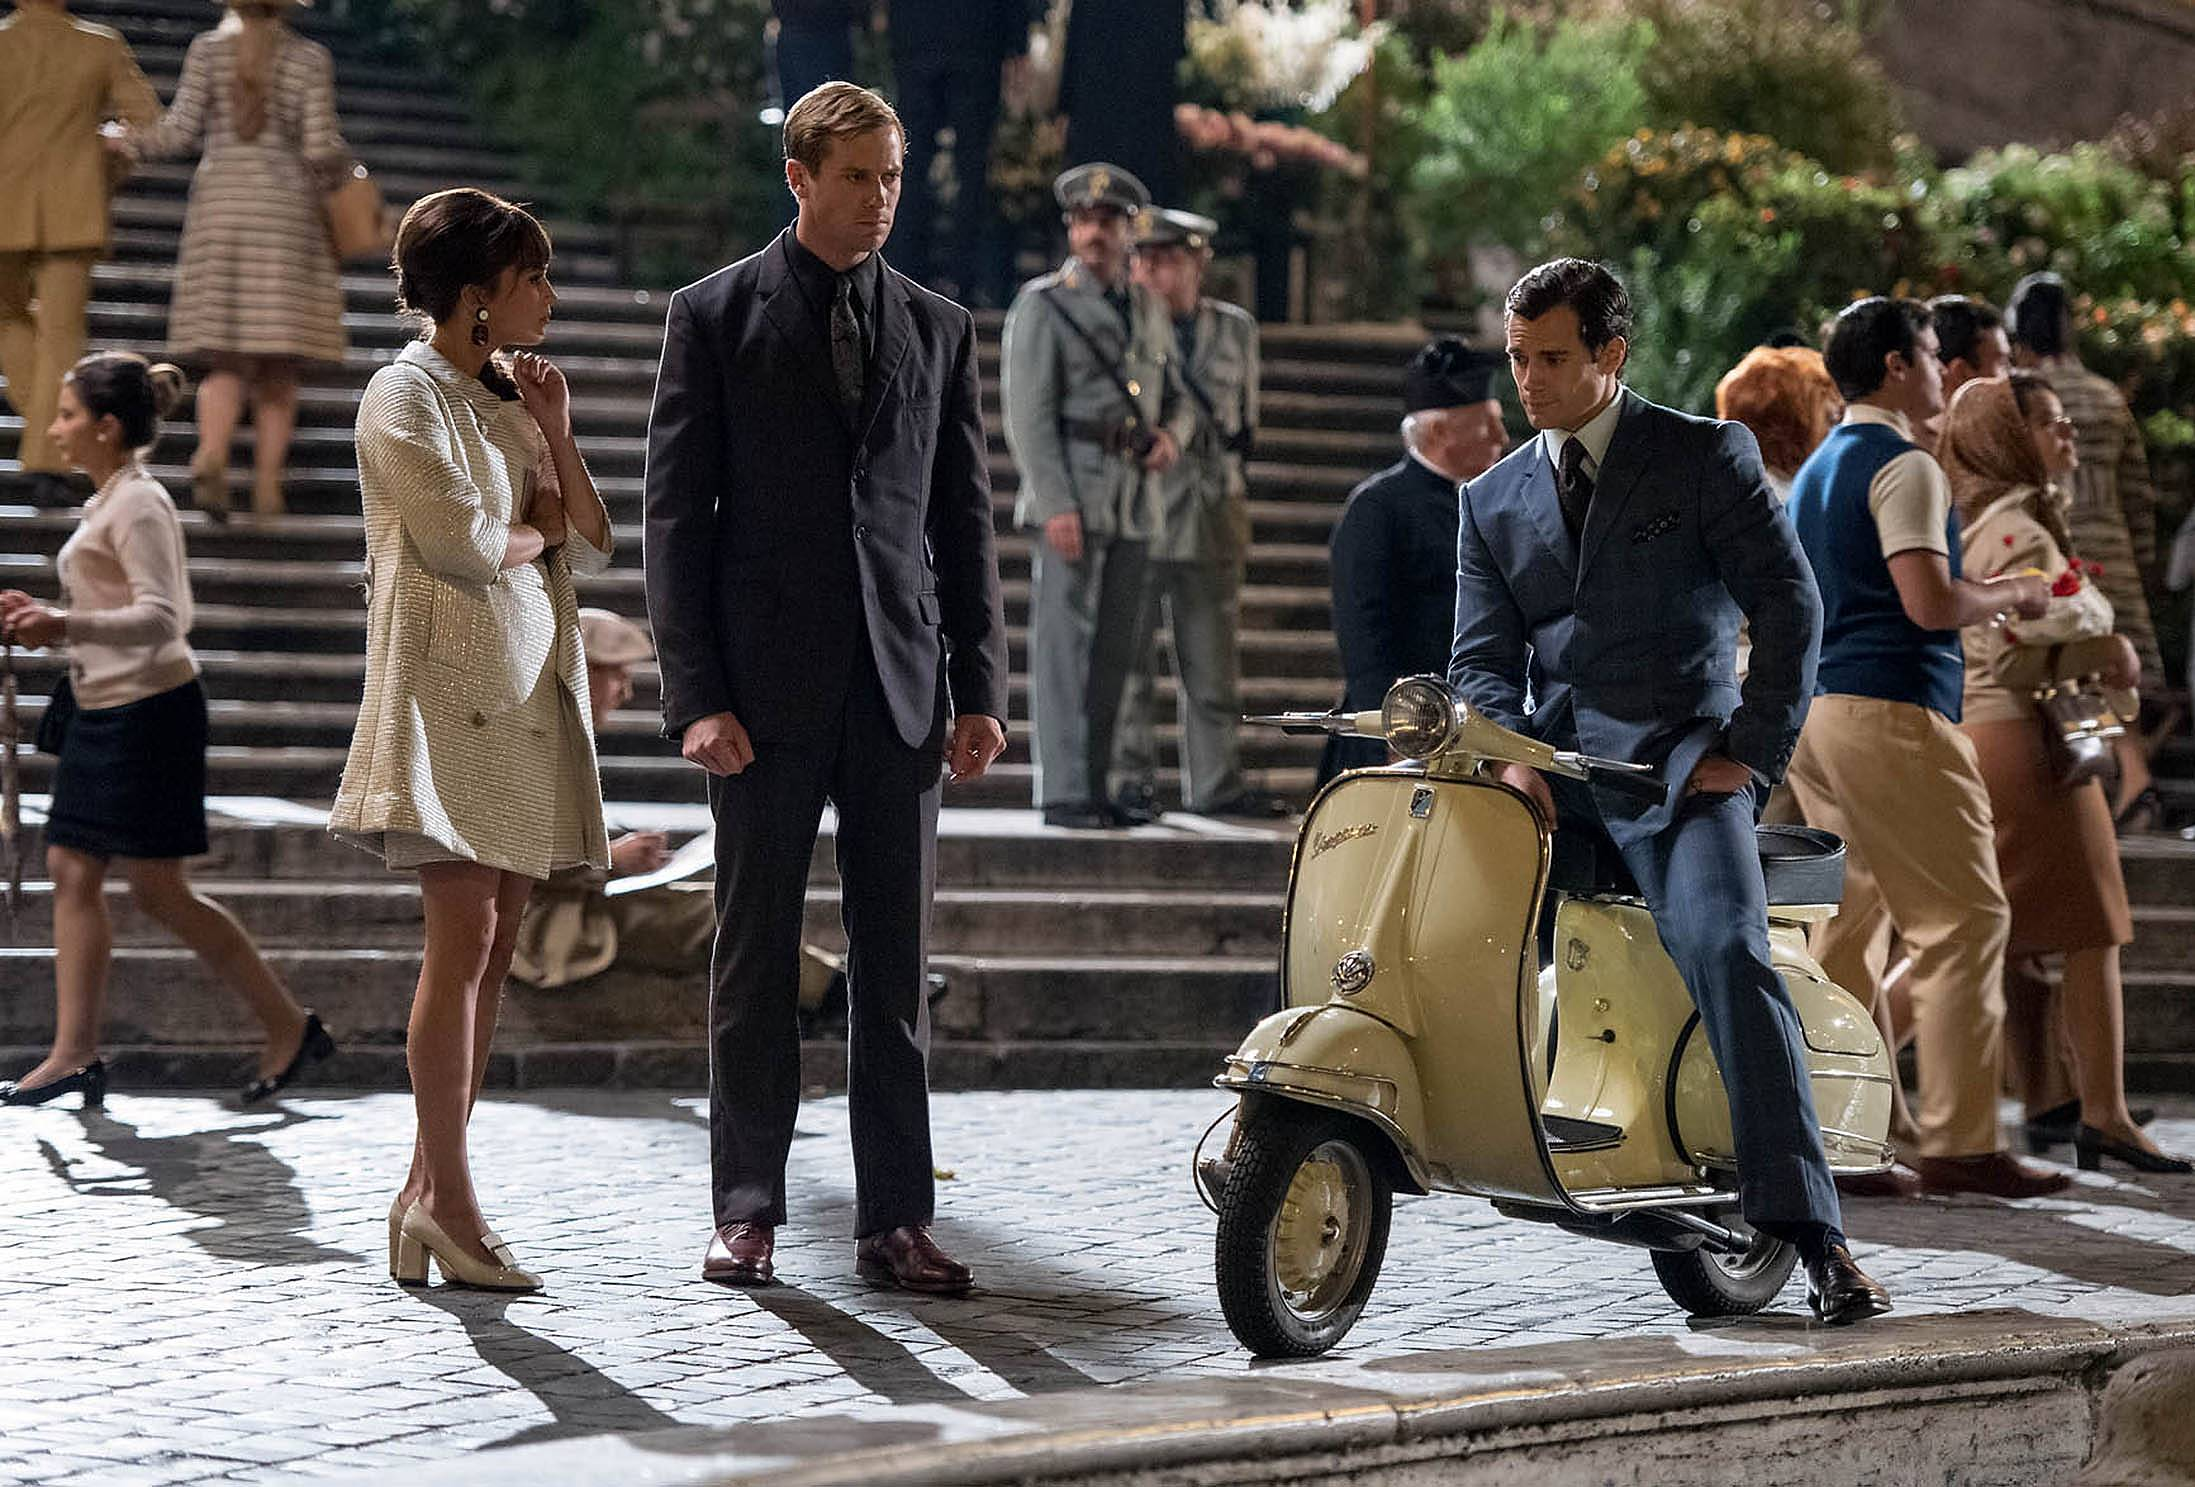 The Man from U.N.C.L.E. Download